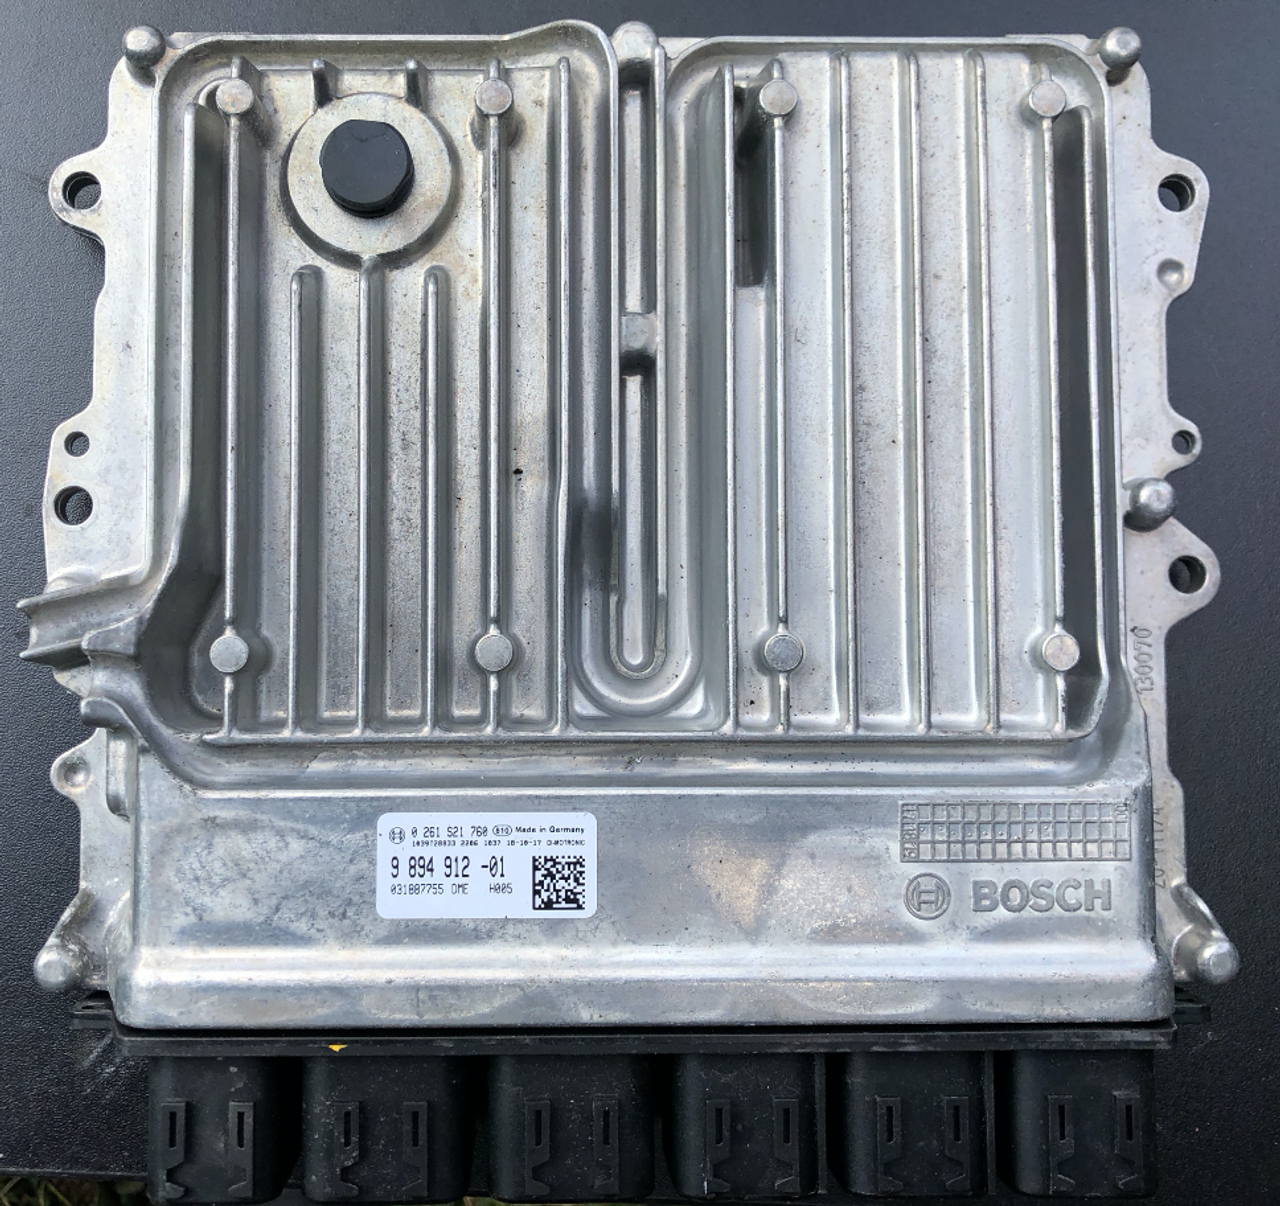 BMW, 0261S21760, 0 261 S21 760, 9894912, 9 894 912, DME